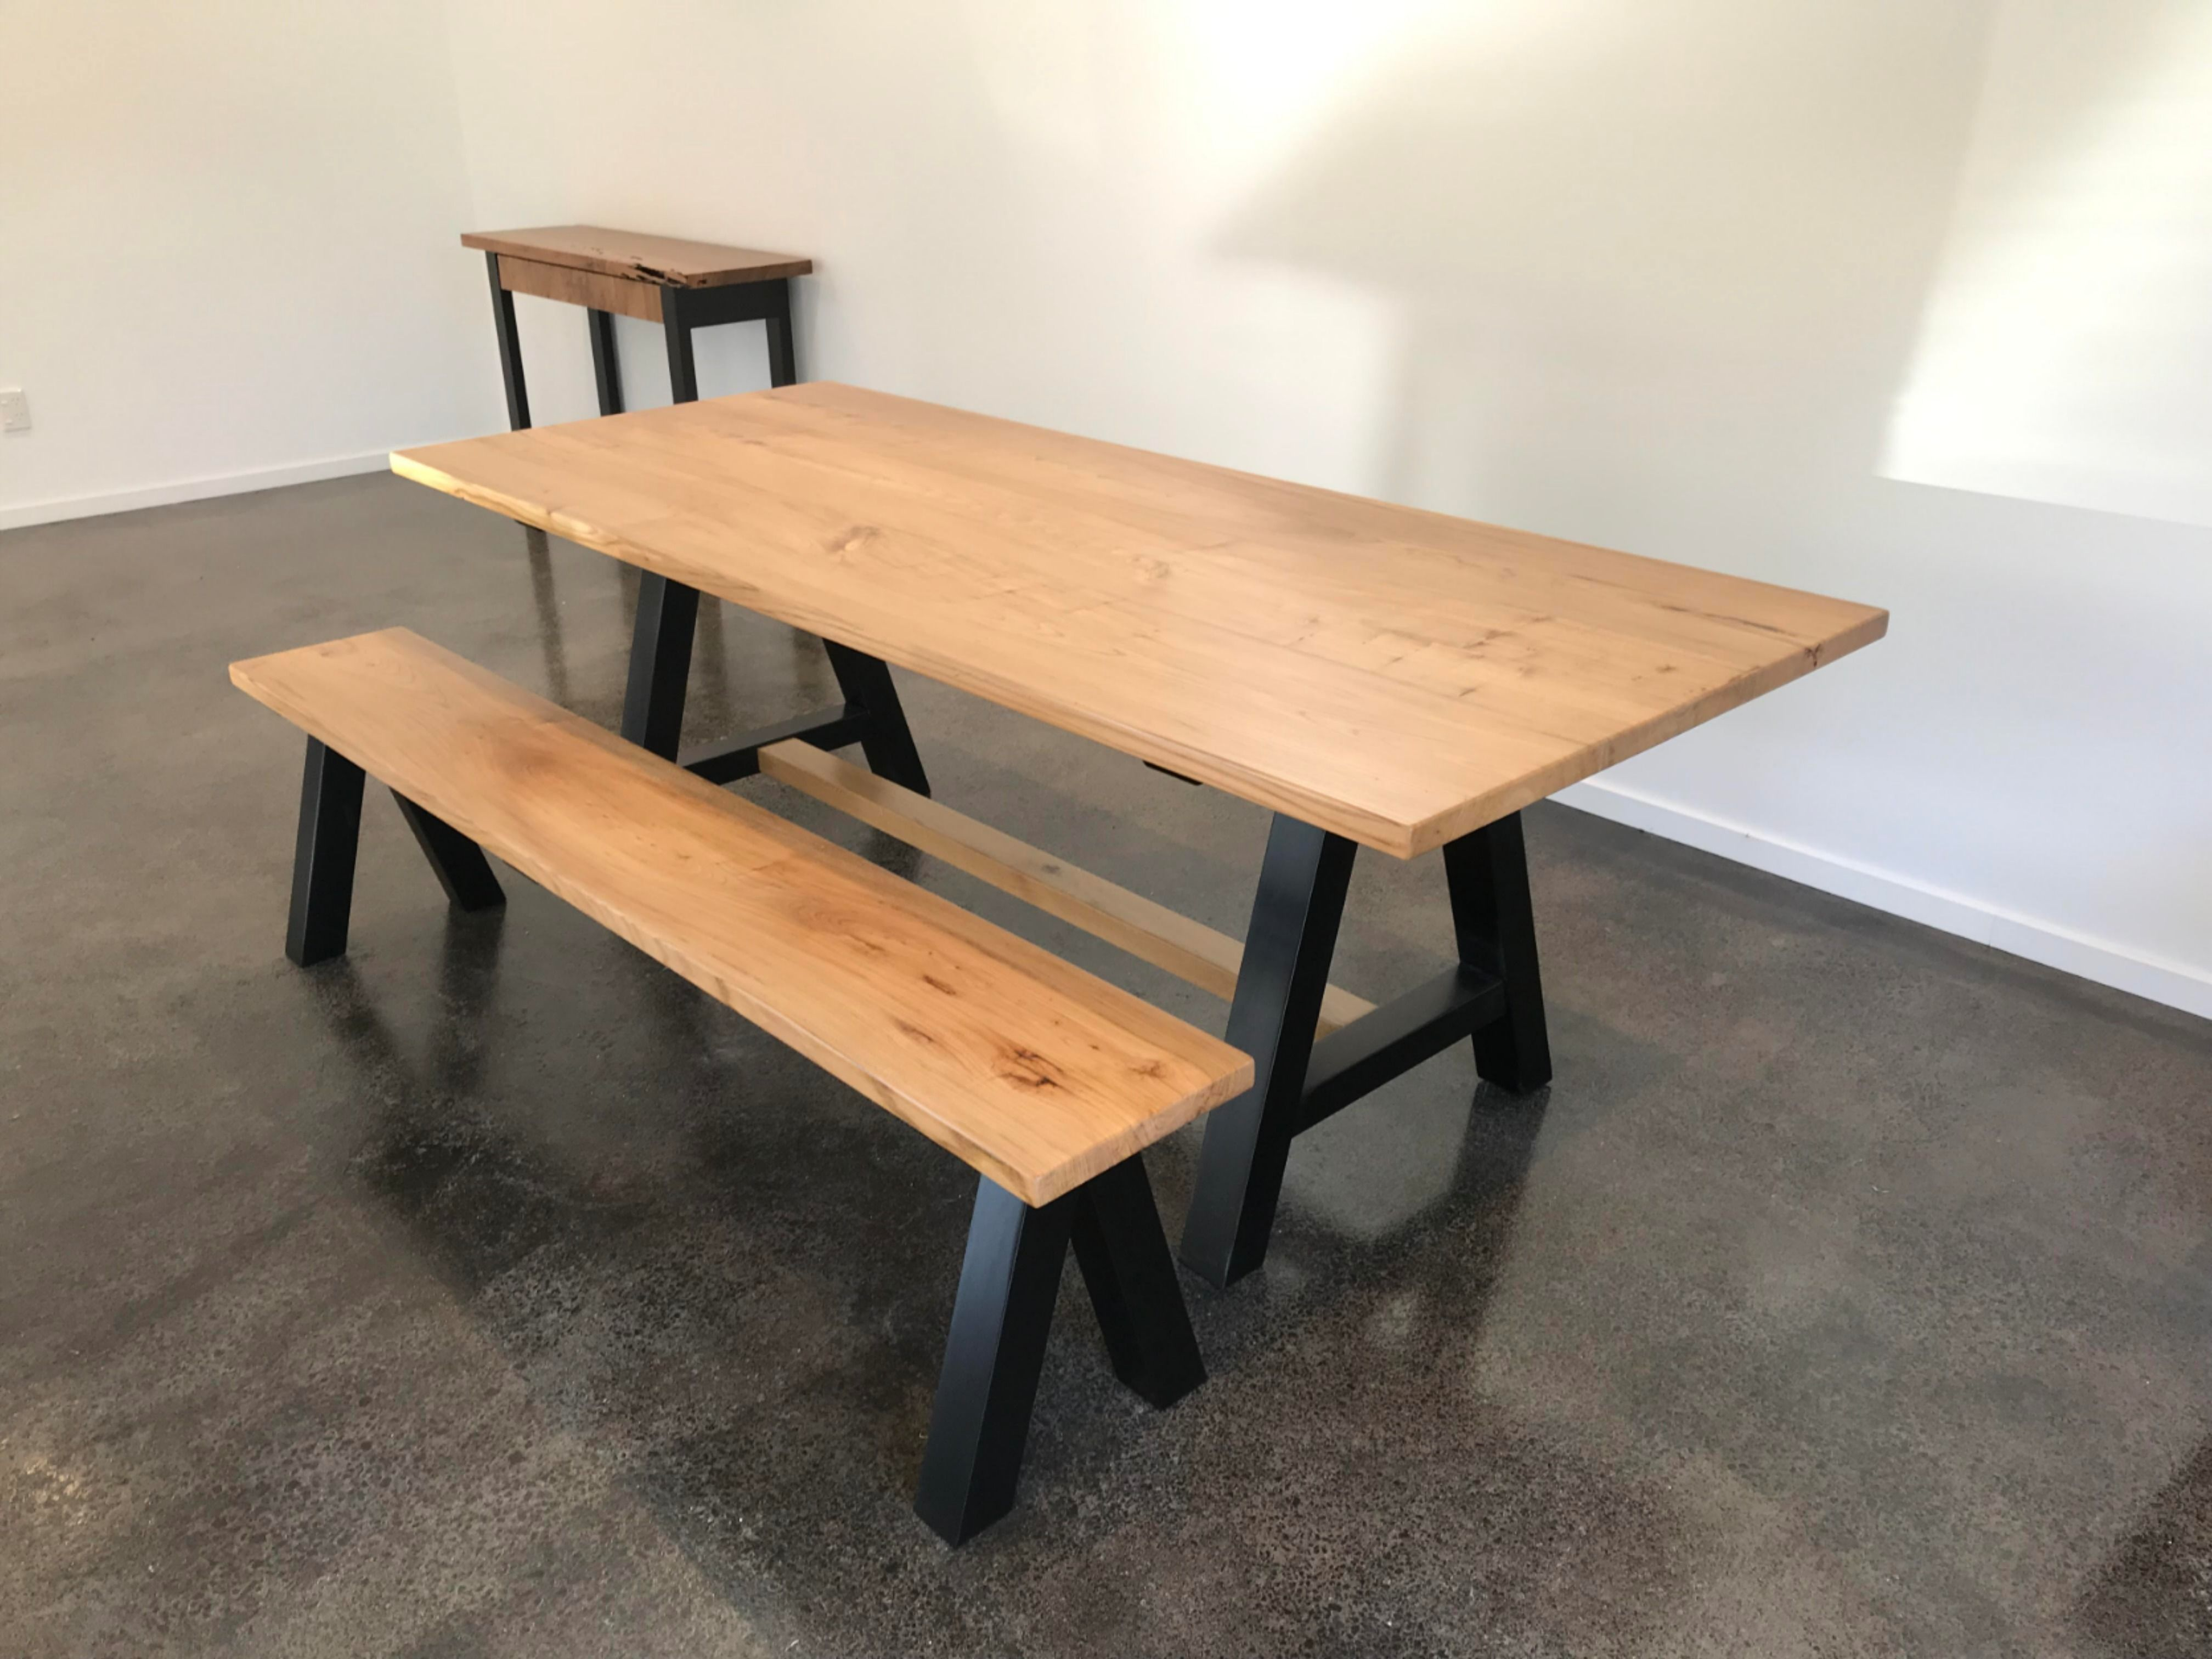 Pin On Bespoke Wood Dining Tables By Brendon Catley